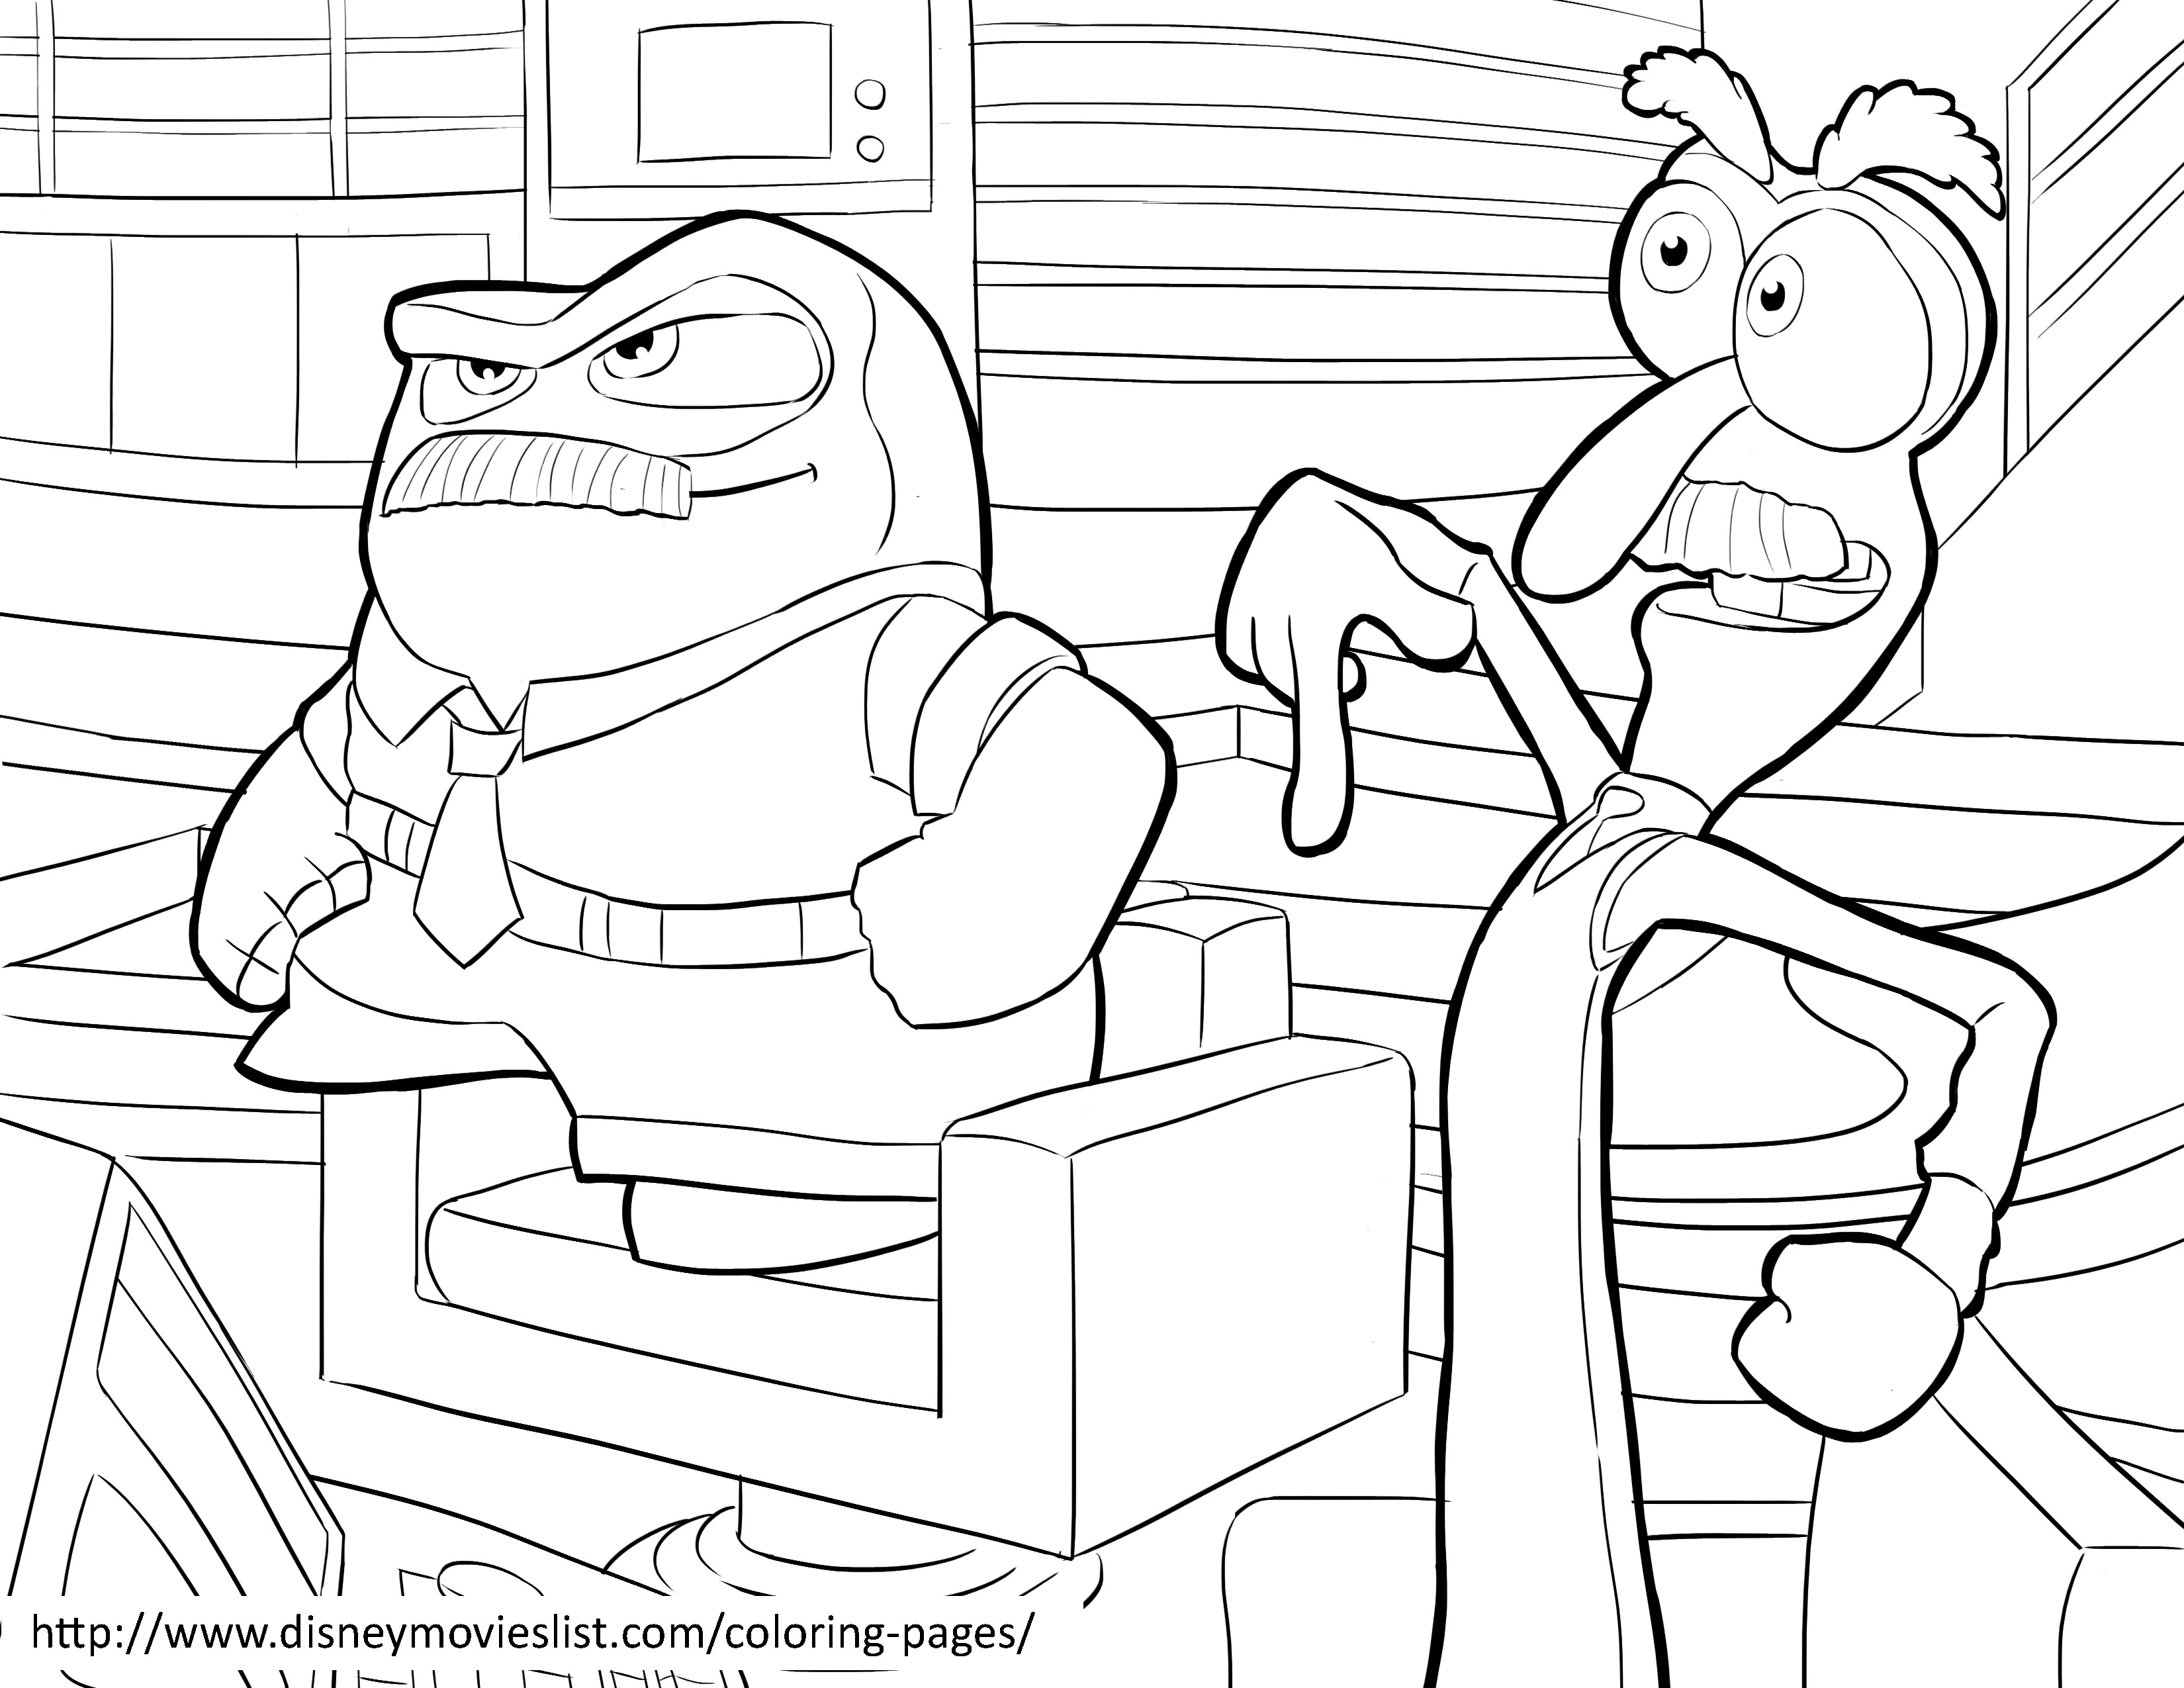 3300x2550 Disgust Coloring Page Riley Inside Out